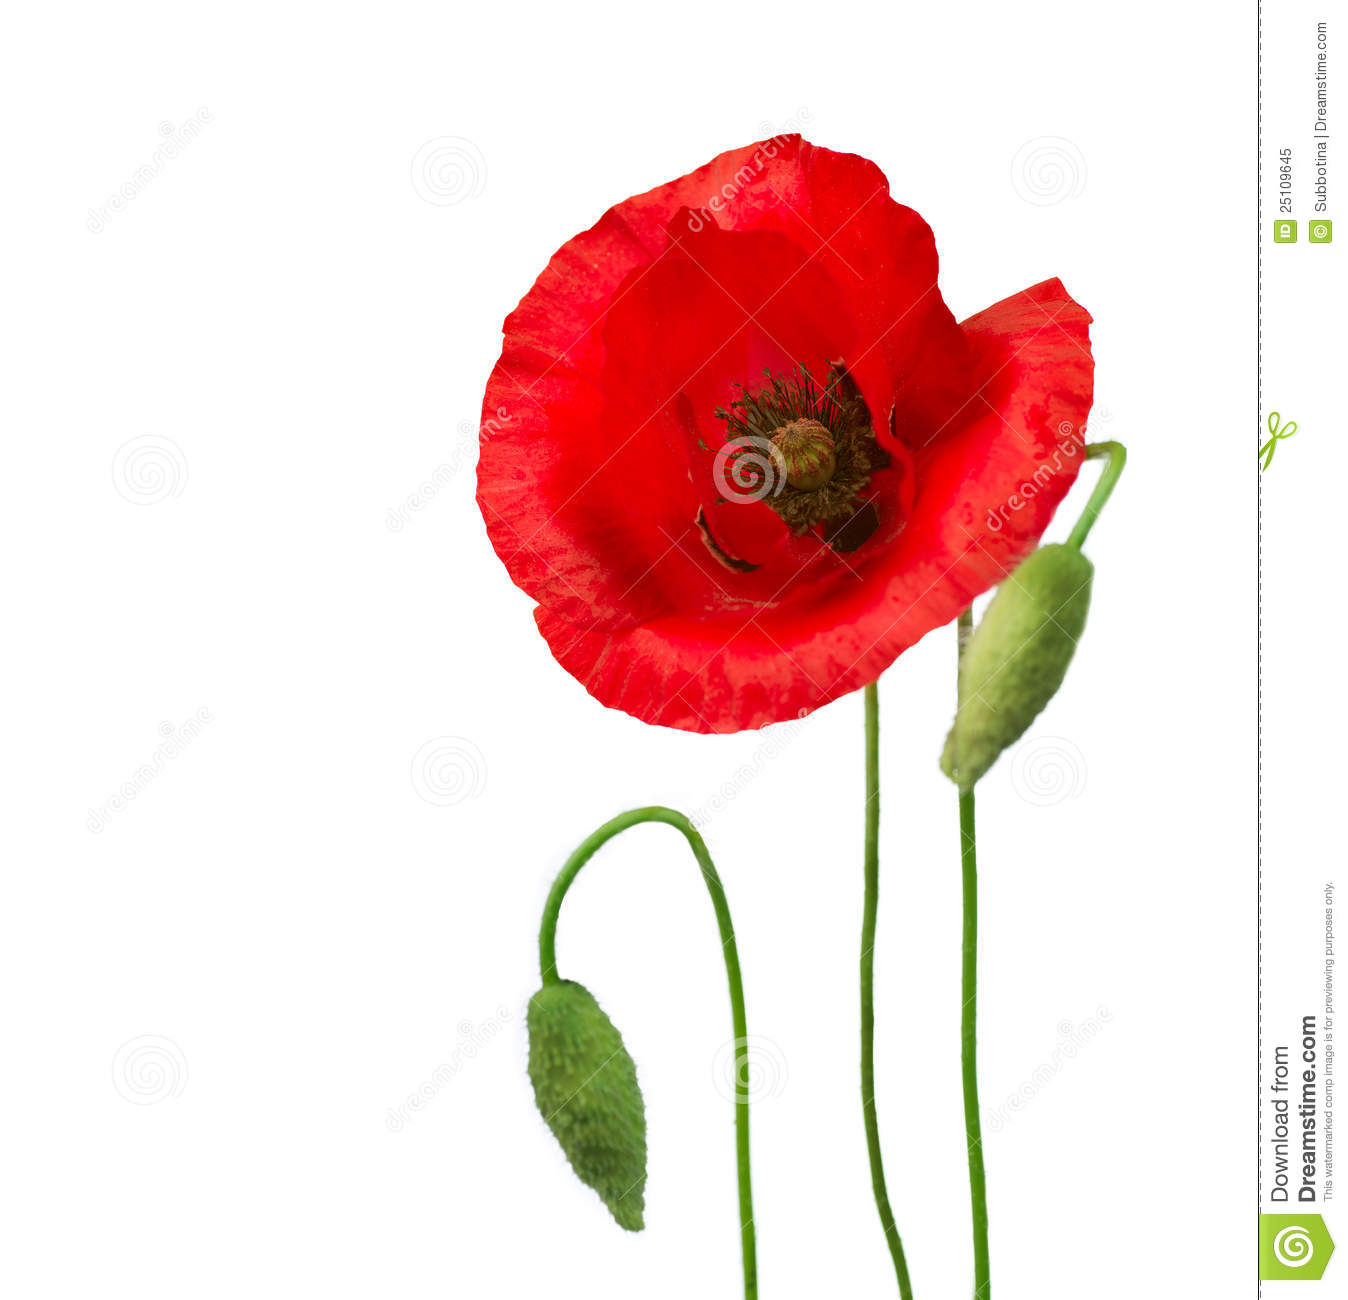 Poppy Flowers Stock Image Image Of Beauty Fragility 25109645